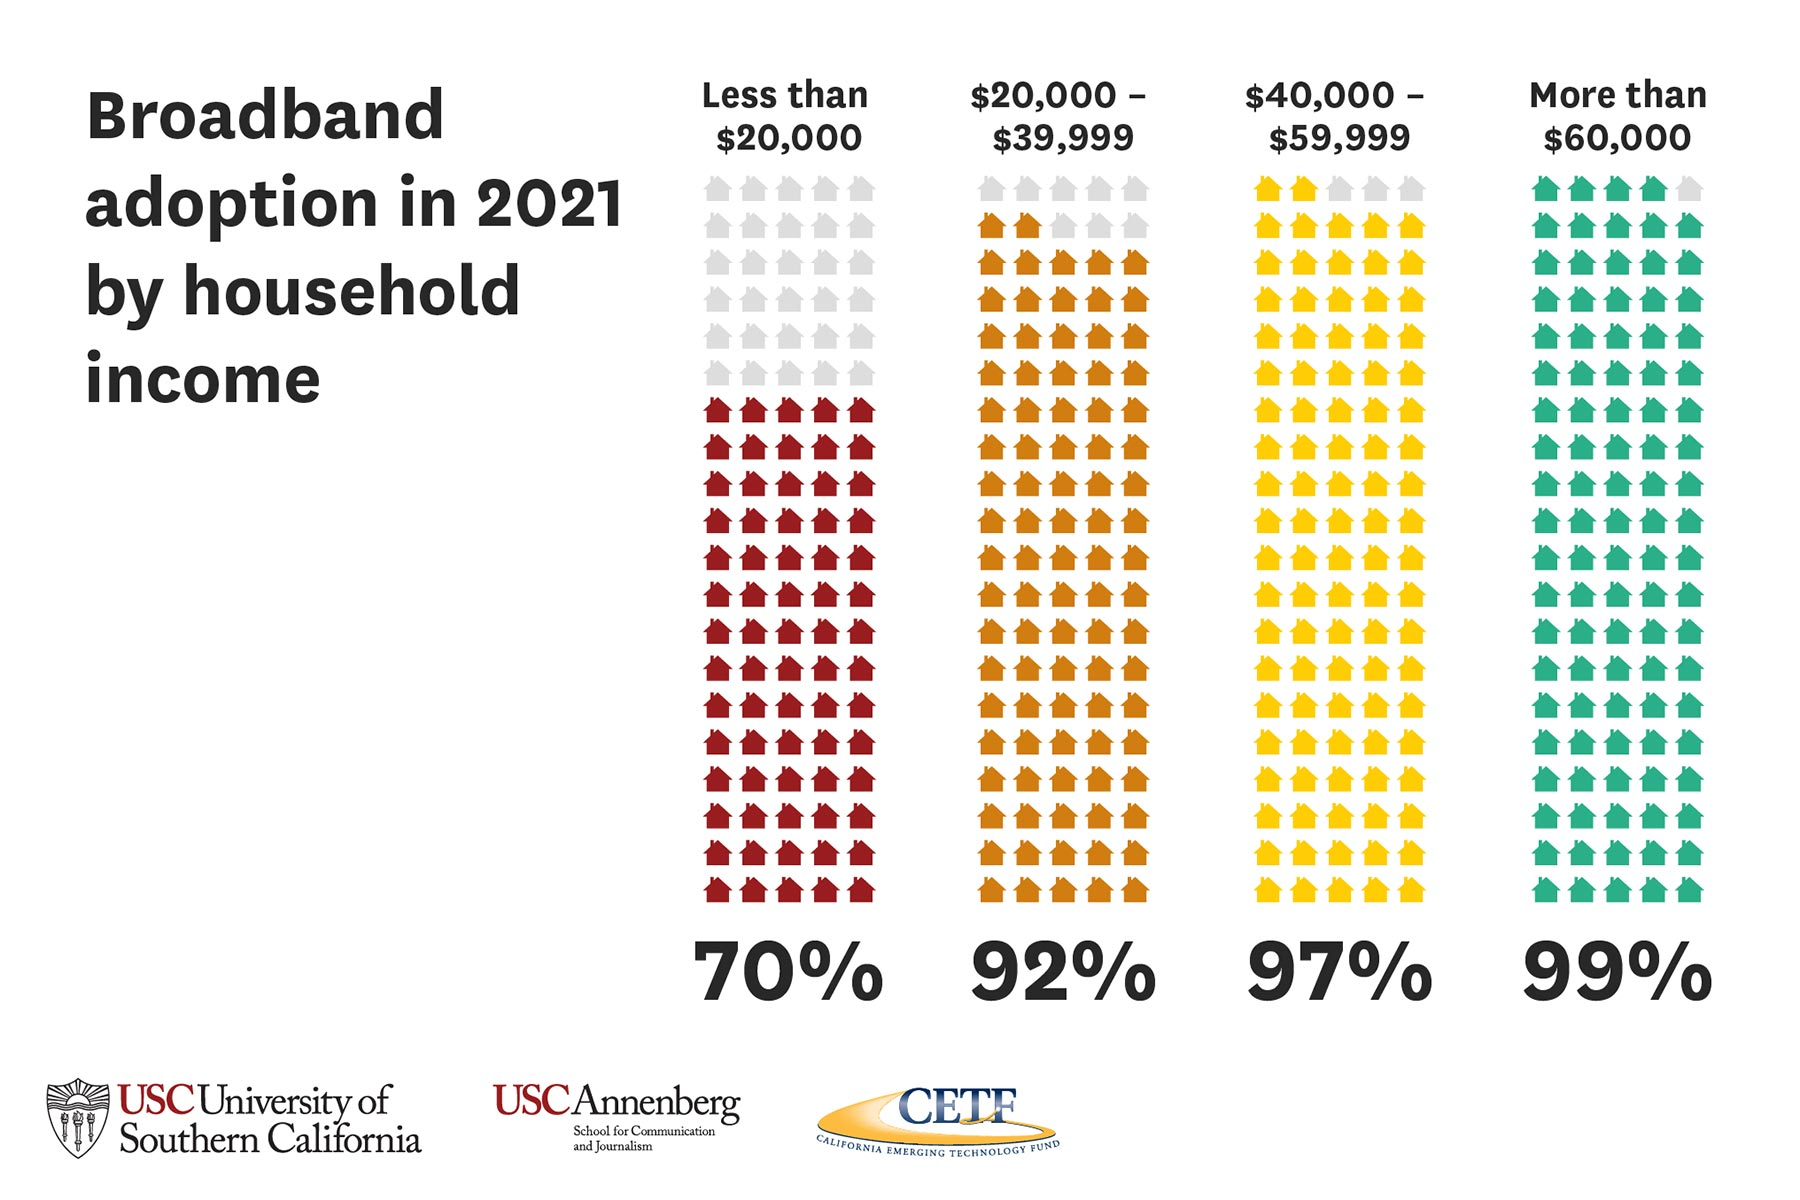 Broadband adoption in 2021 by household income